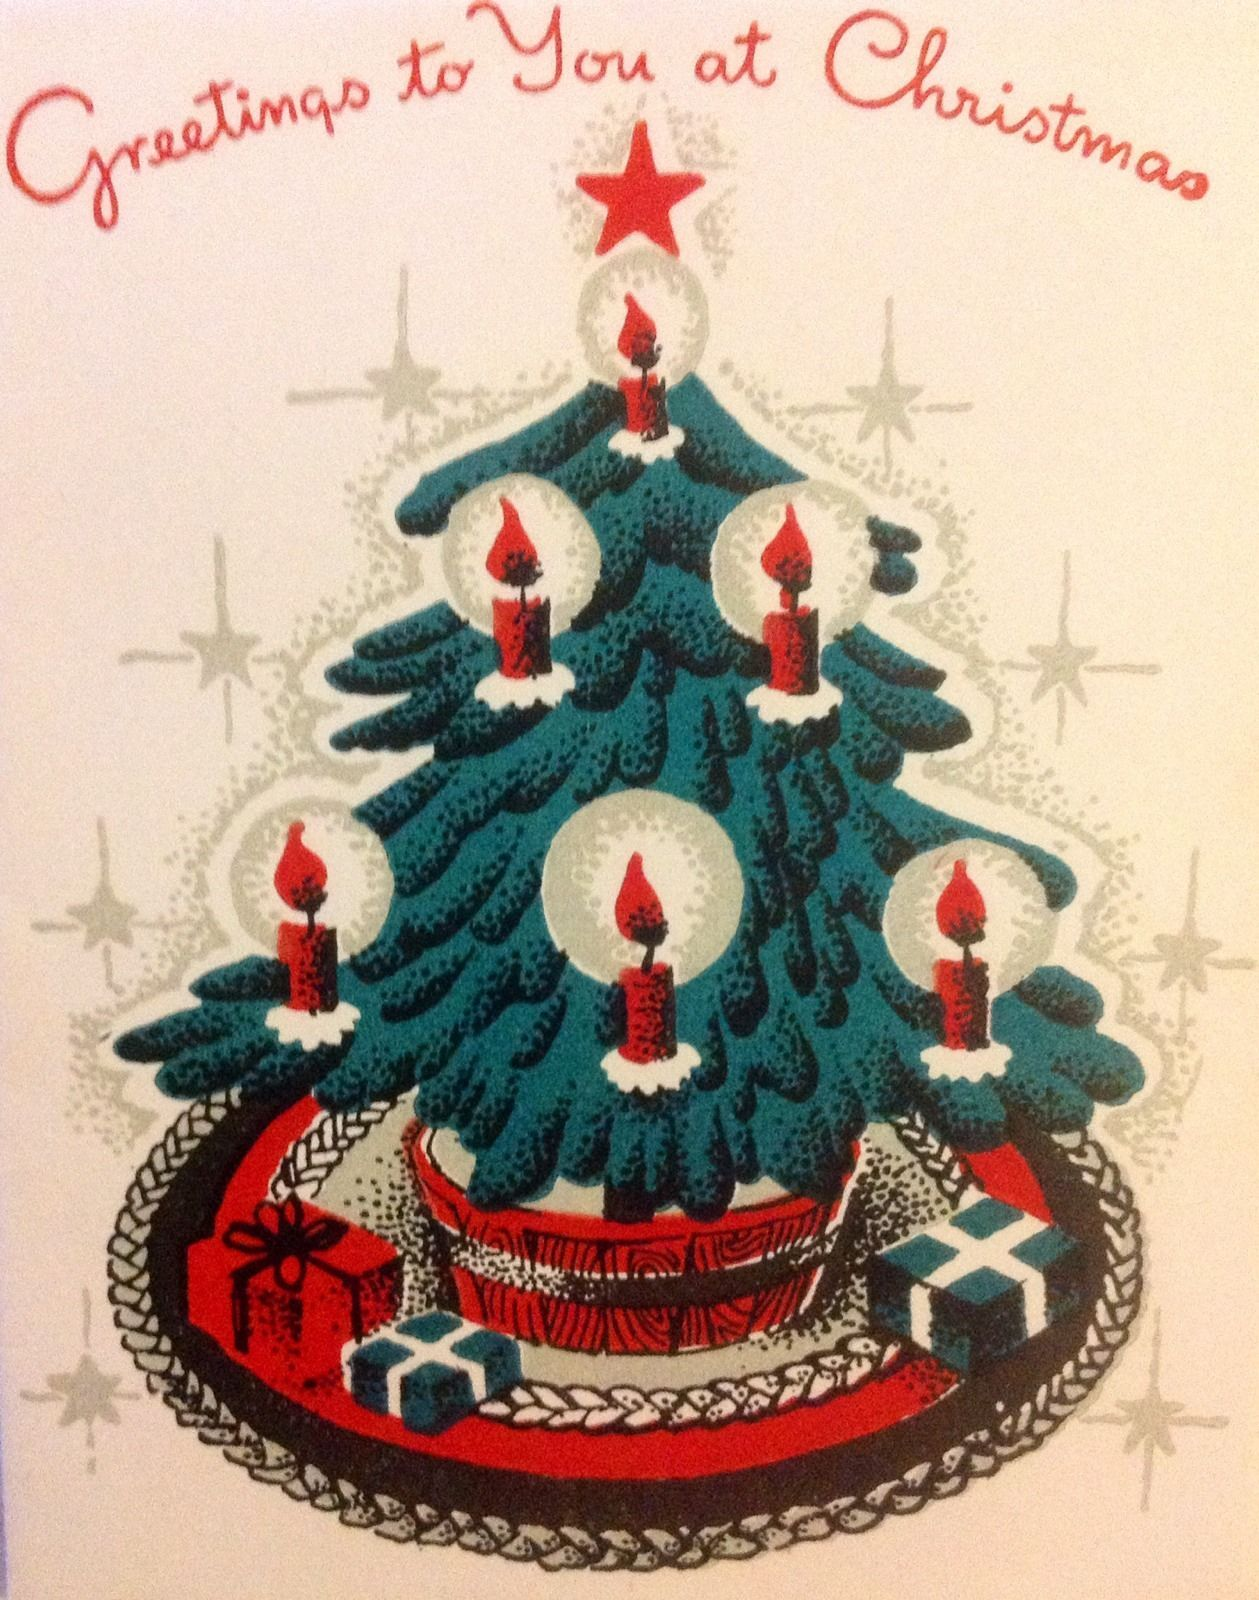 Vintage 1940s xmas greeting card with christmas tree red candles vintage 1940s xmas greeting card with christmas tree red candles presents ebay kristyandbryce Image collections